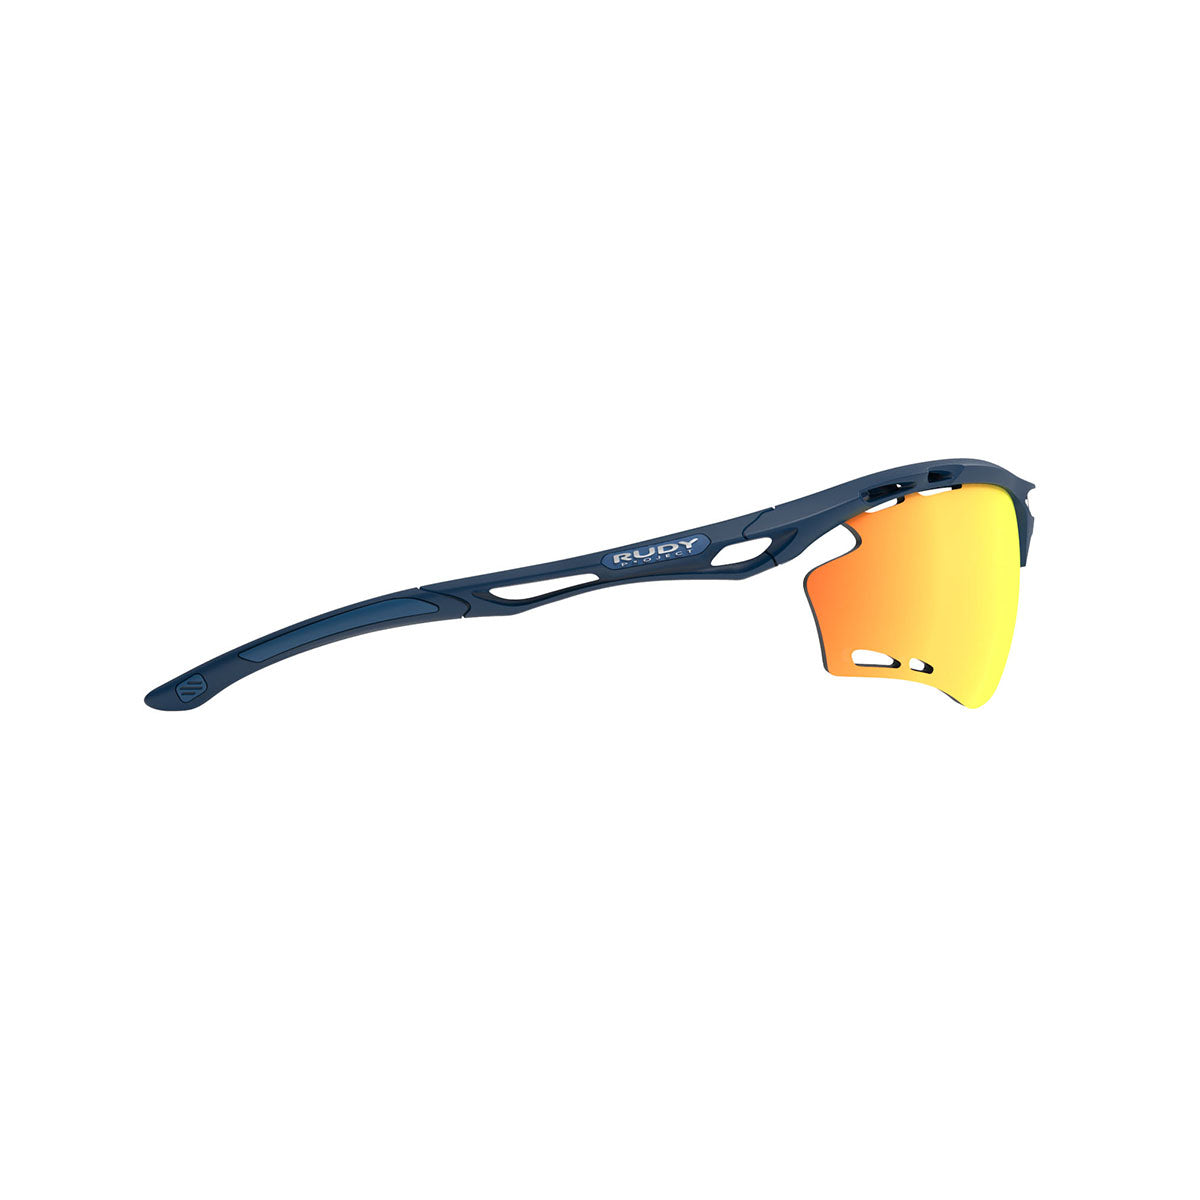 Rudy Project - Propulse - frame color: Navy Blue Matte - lens color: Multilaser Orange - Bumper Color:  - photo angle: Side Variant Hover Image